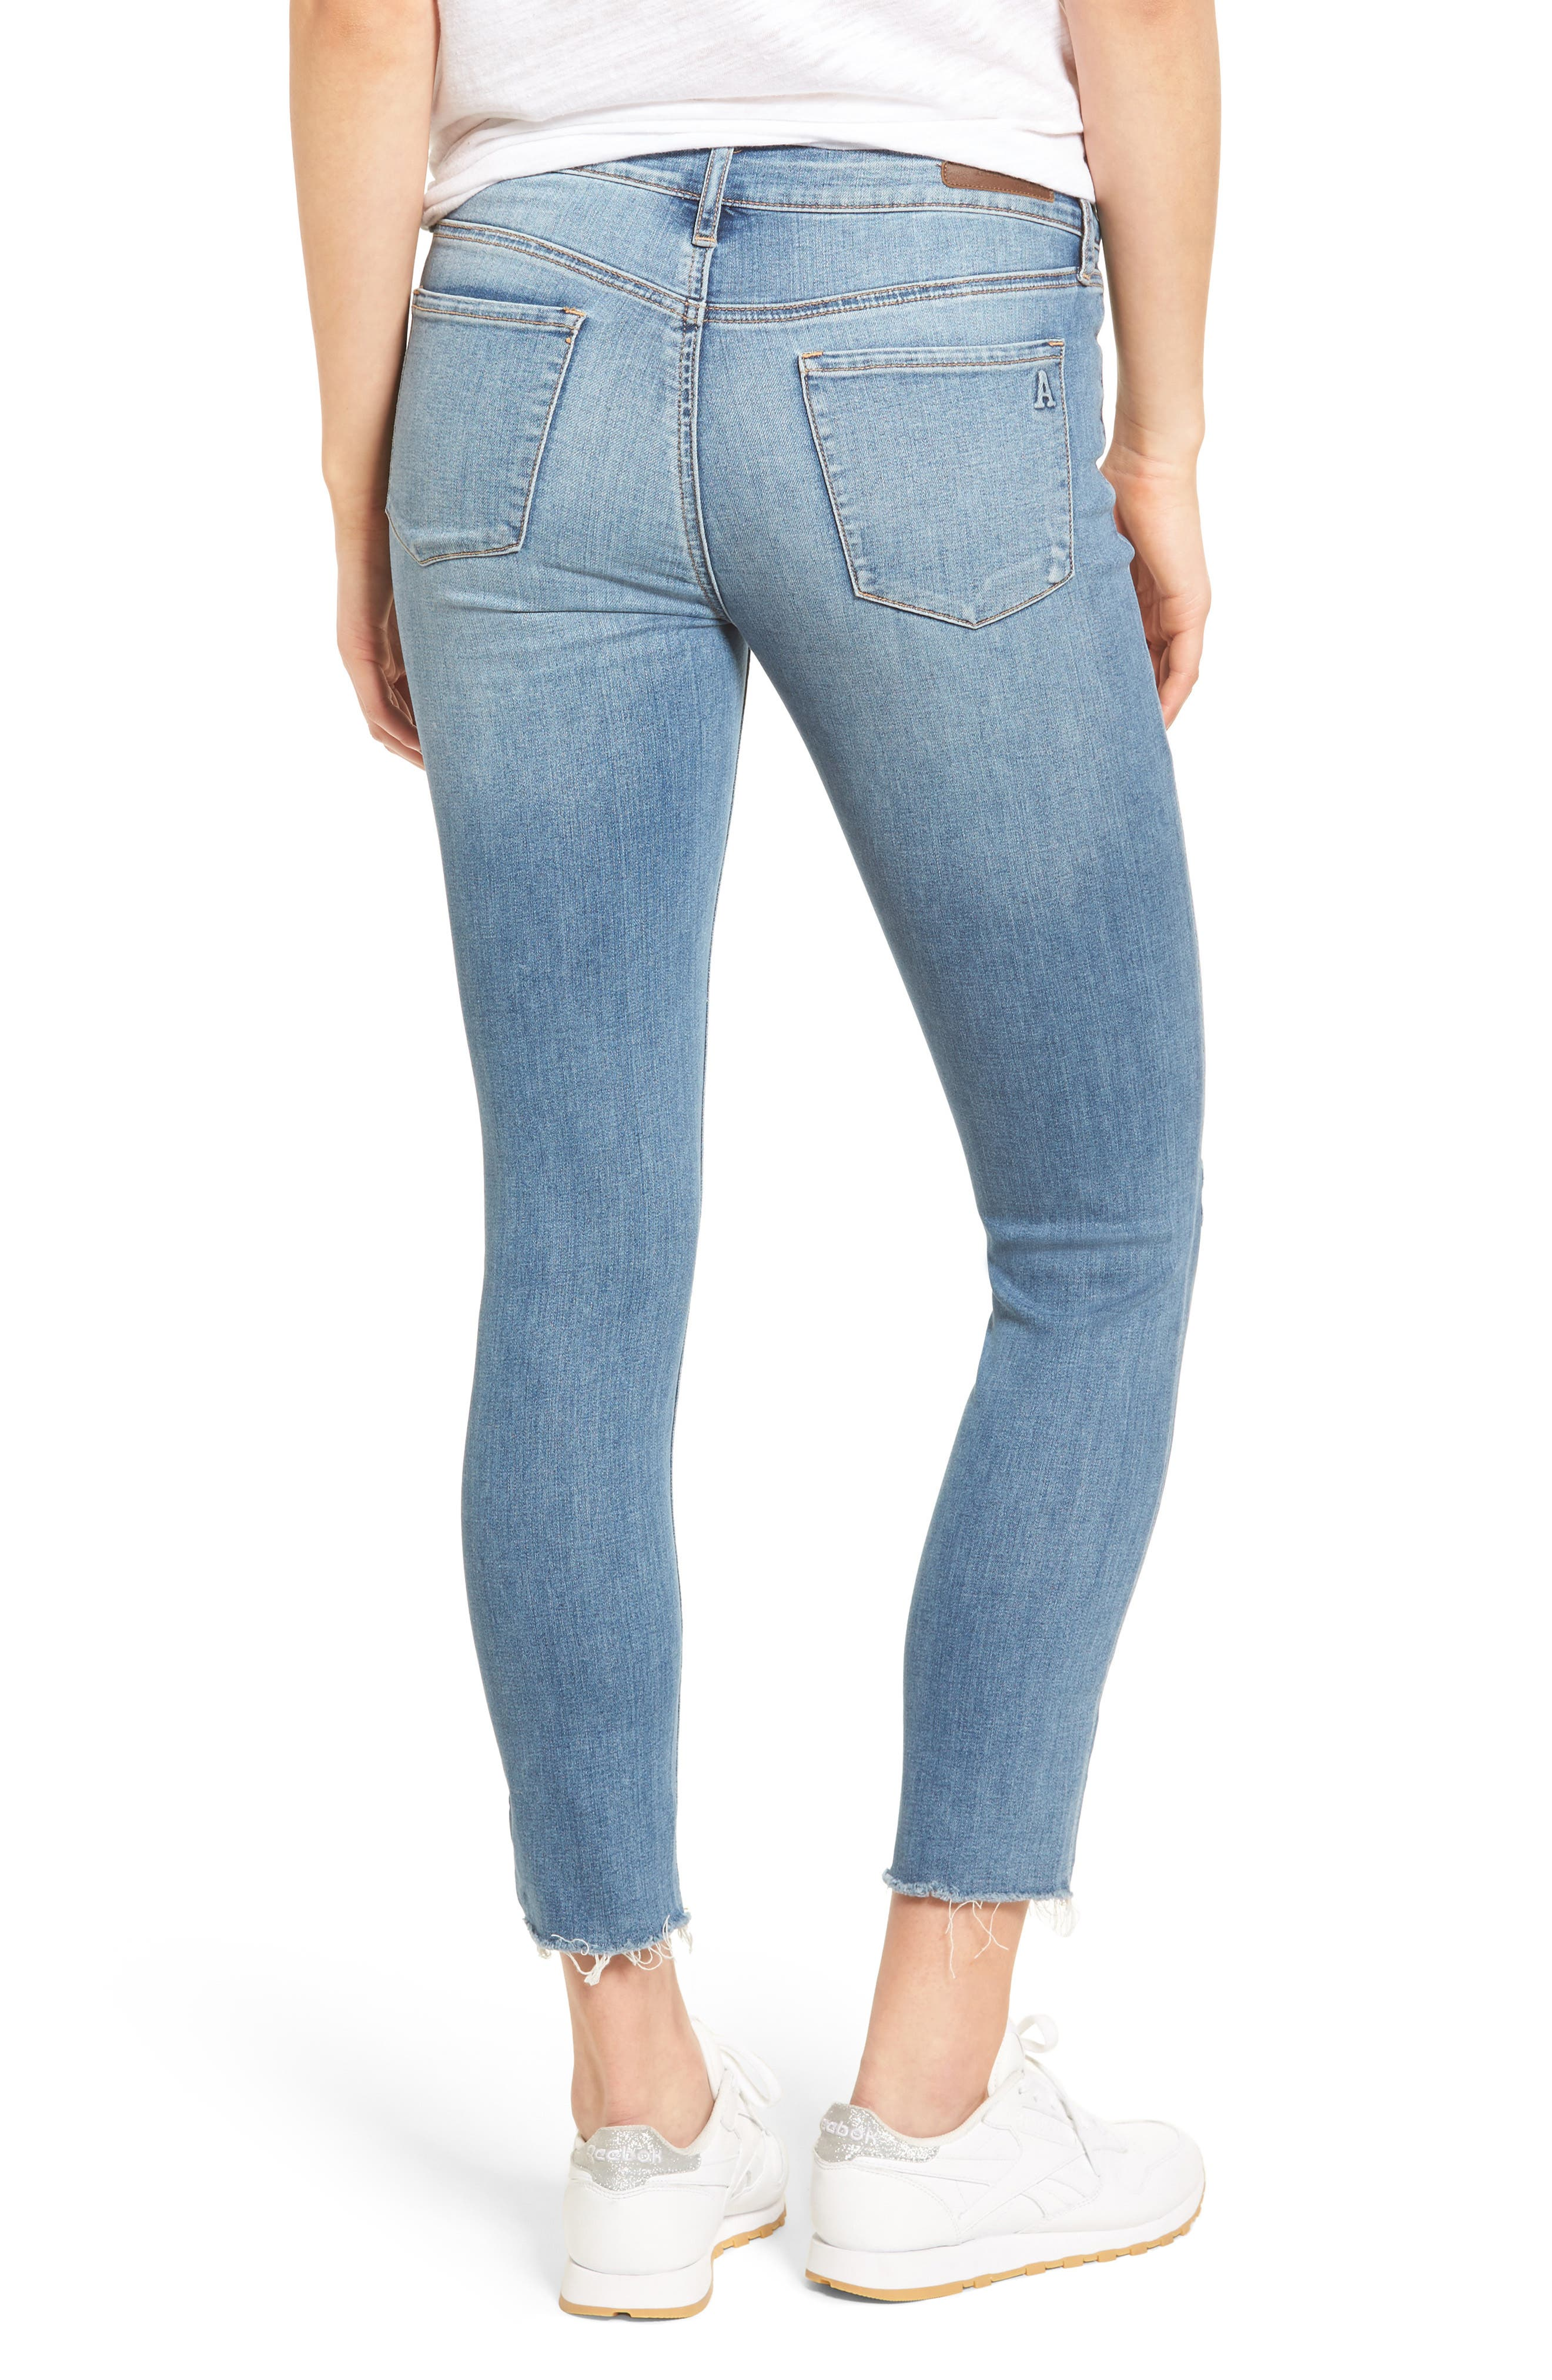 Carly Skinny Crop Jeans,                             Alternate thumbnail 2, color,                             400